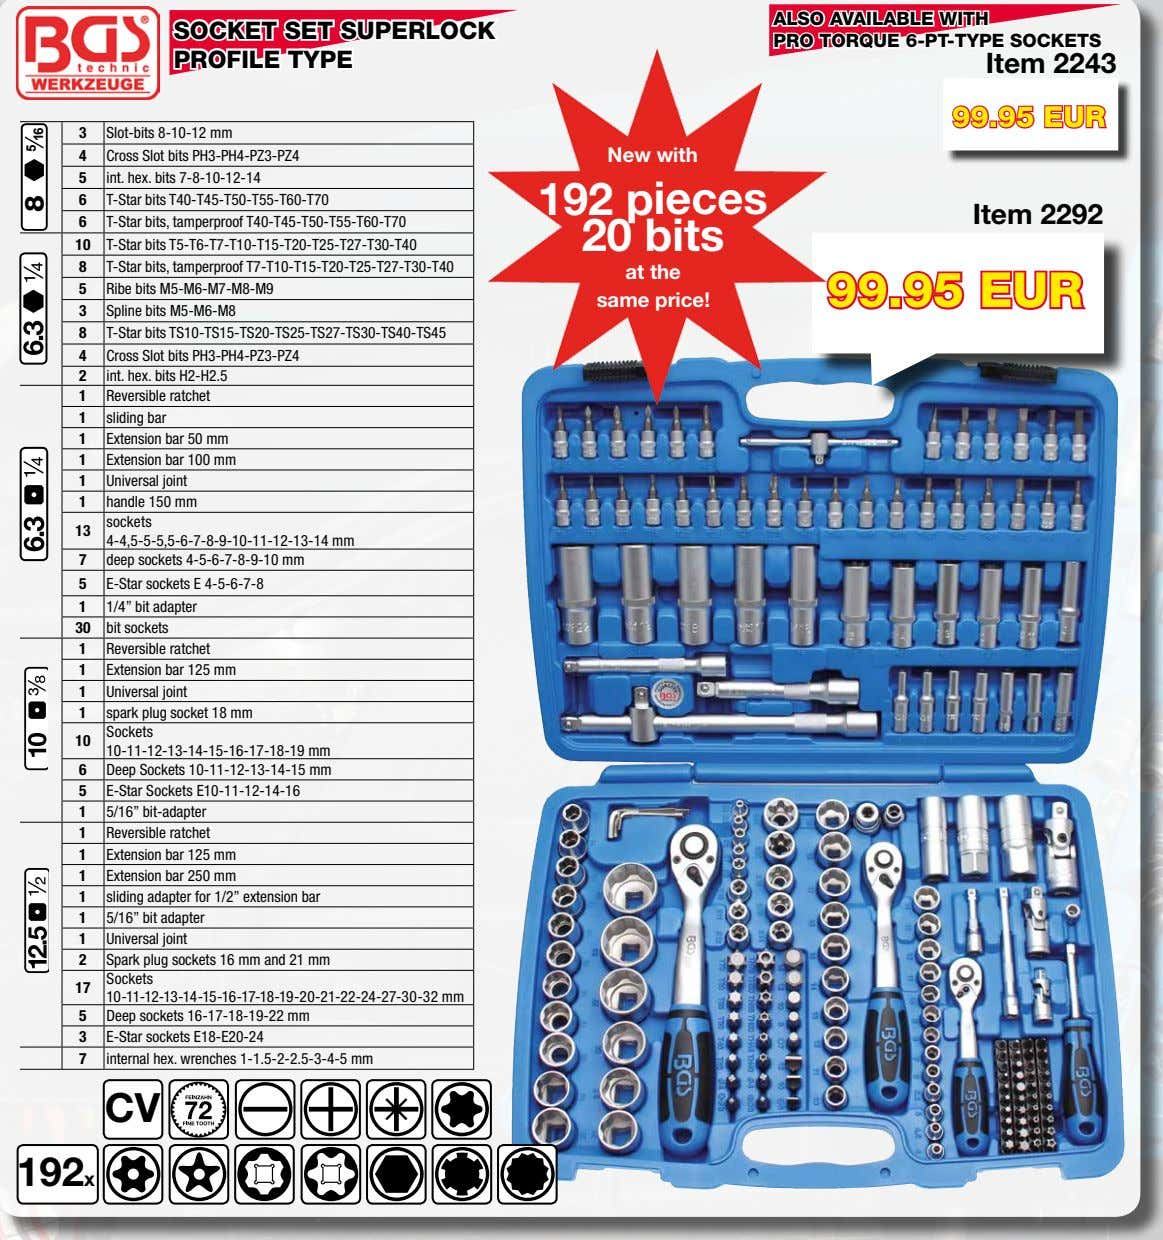 hex. wrenches 1-1.5-2-2.5-3-4-5 mm CV 192x 8 5 16 REVERSIBLE RATCHET Item 318 Item 319 Item